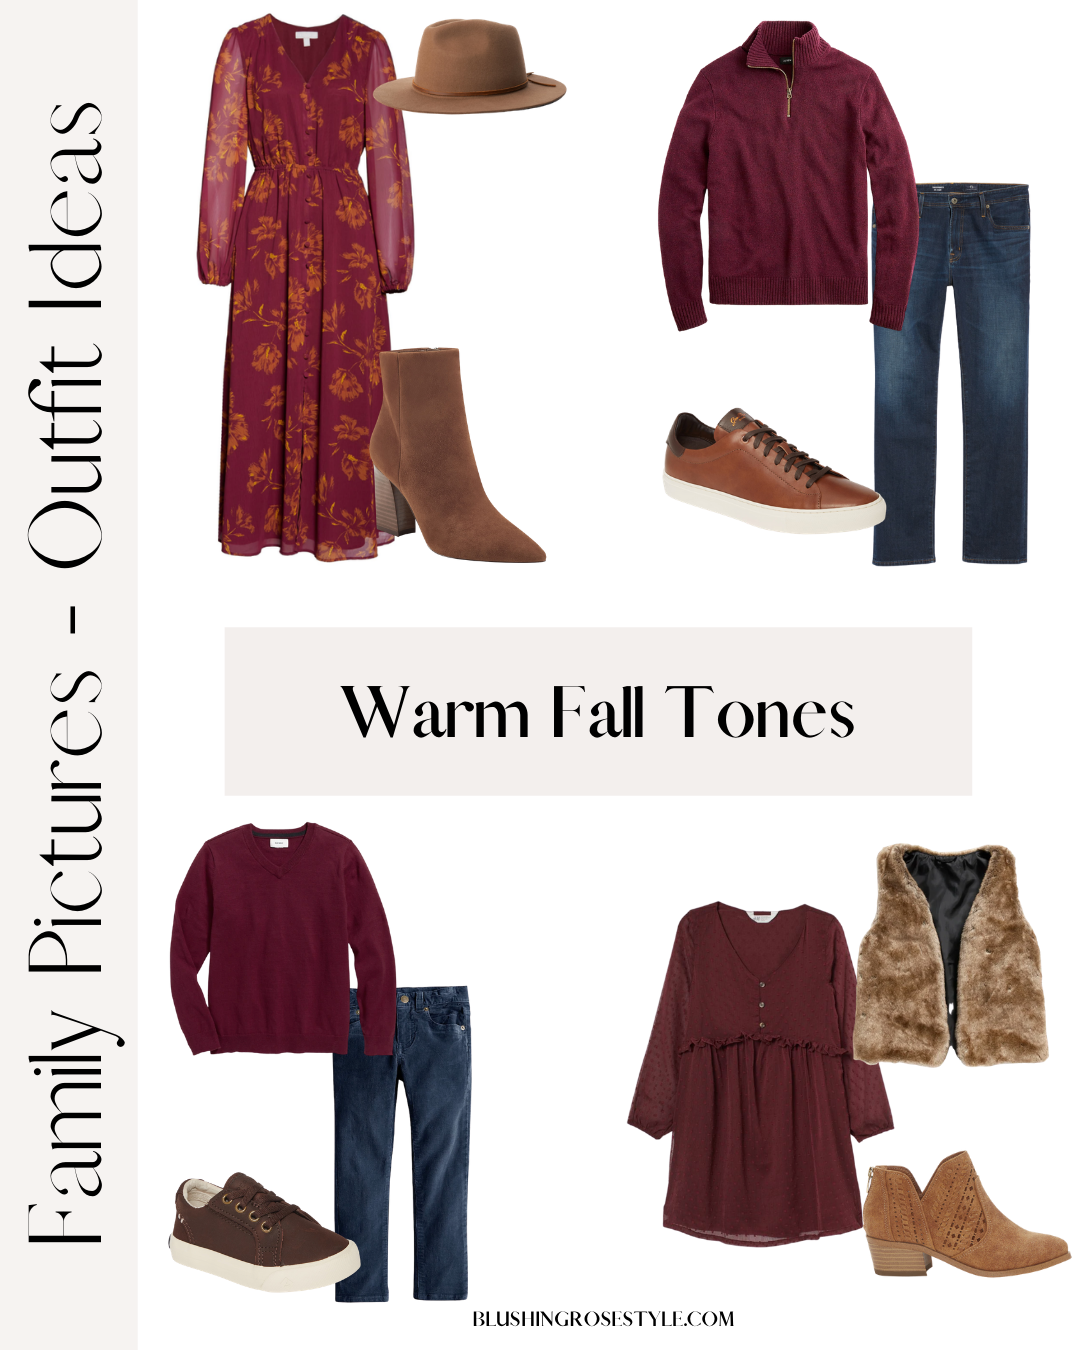 Warm Fall tones for family fall photo outfits